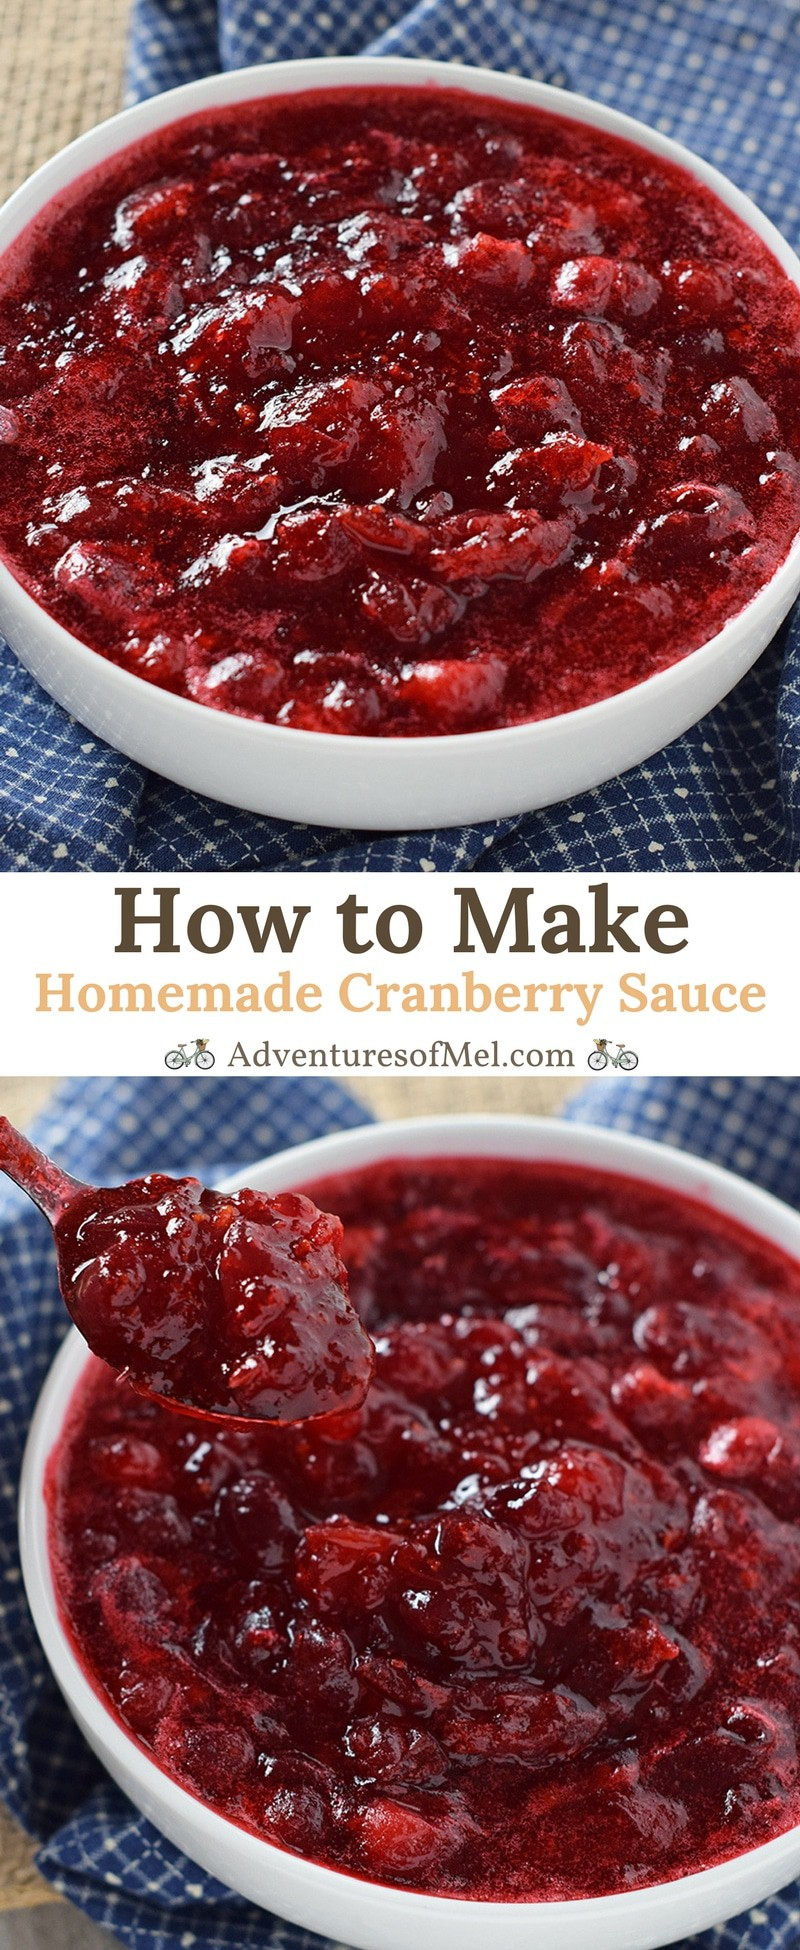 Homemade Cranberry Sauce made from scratch using fresh cranberries. Easy recipe, perfect for Thanksgiving and the holiday season.